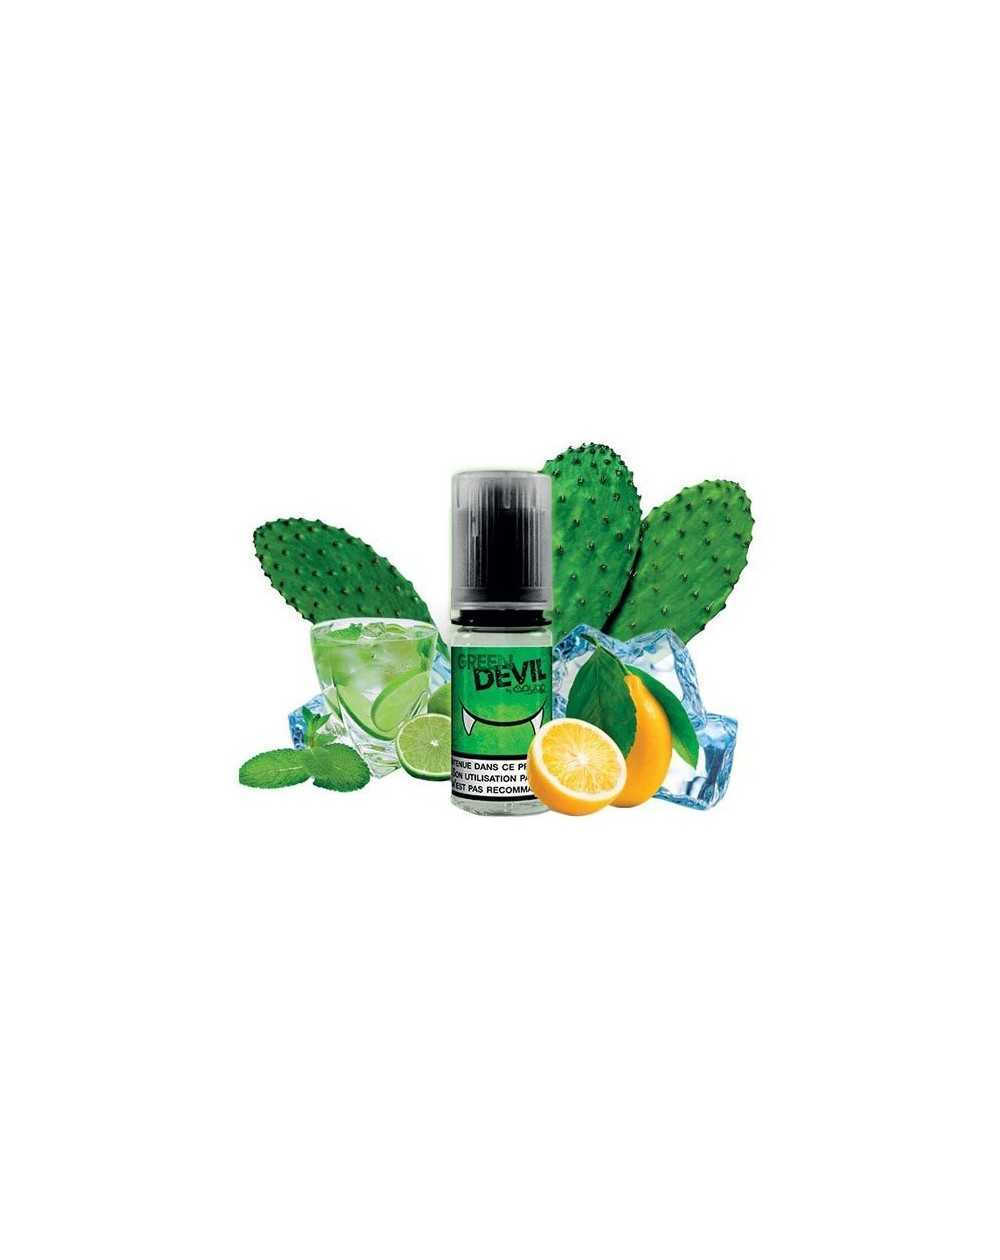 Green Devil 10ml - Avap Les Devils-1